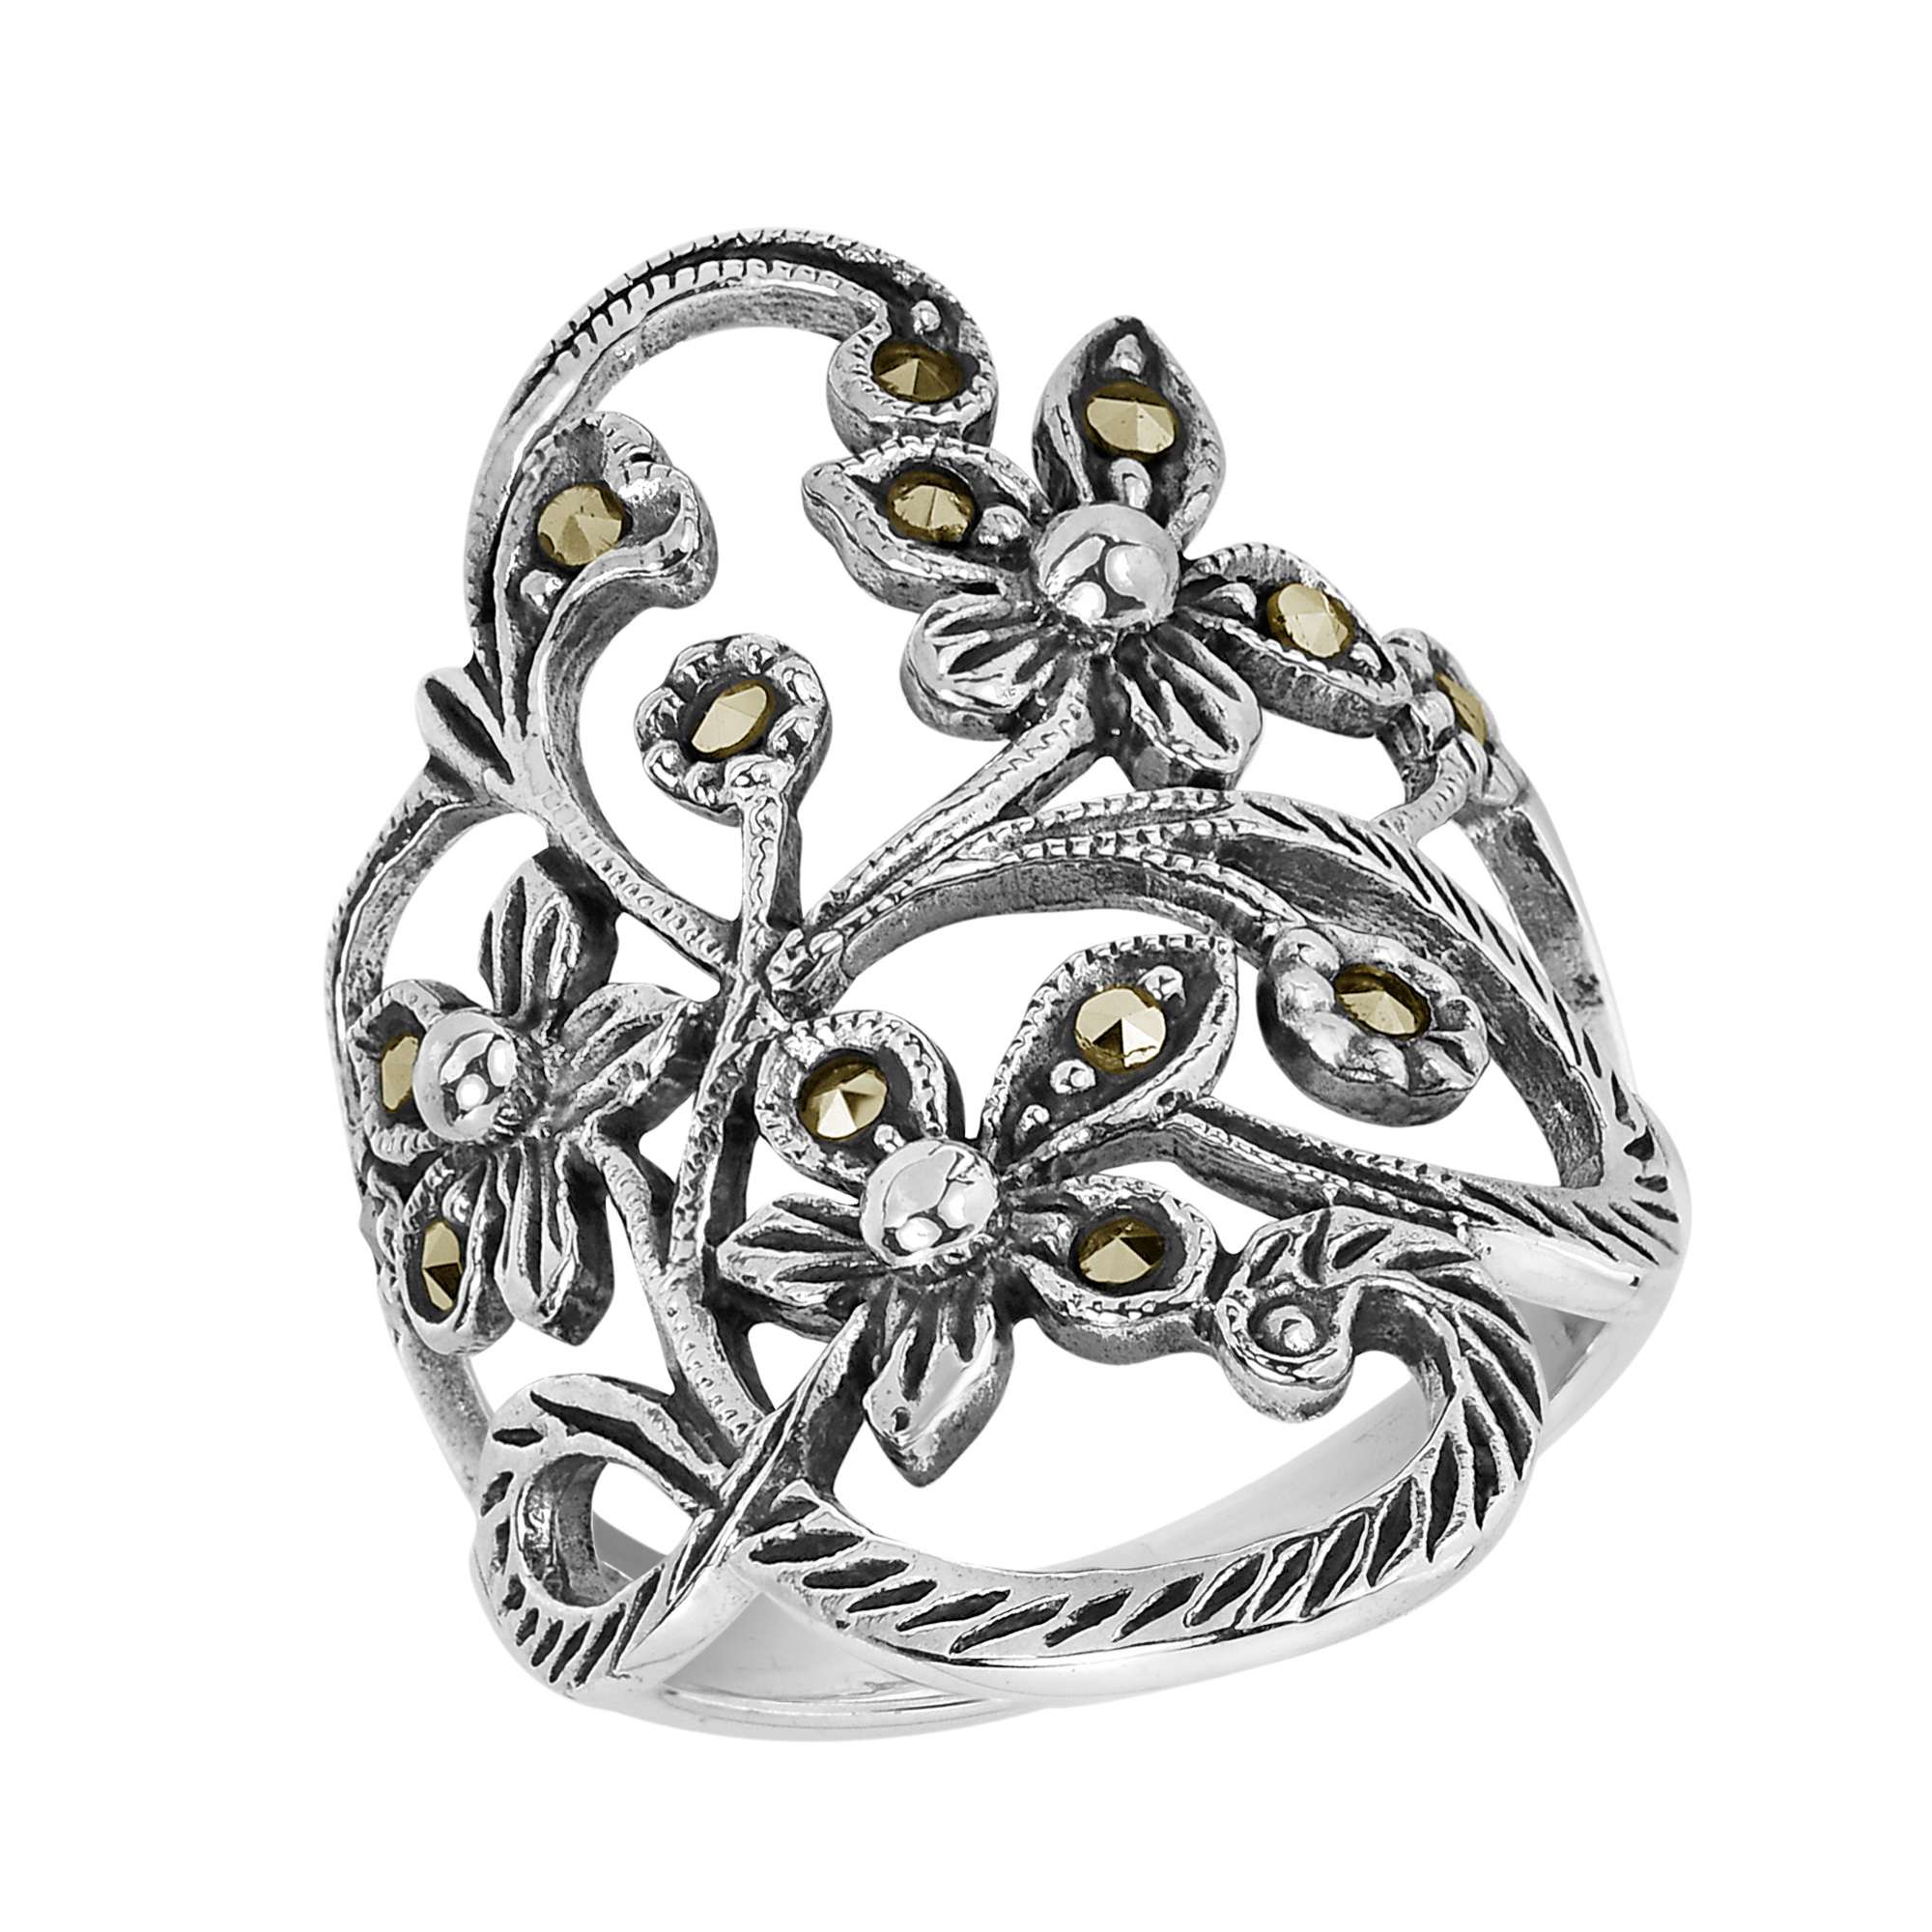 swirl band plain everyday pr aeravida ring marcasite silver sterling products details filigree rings